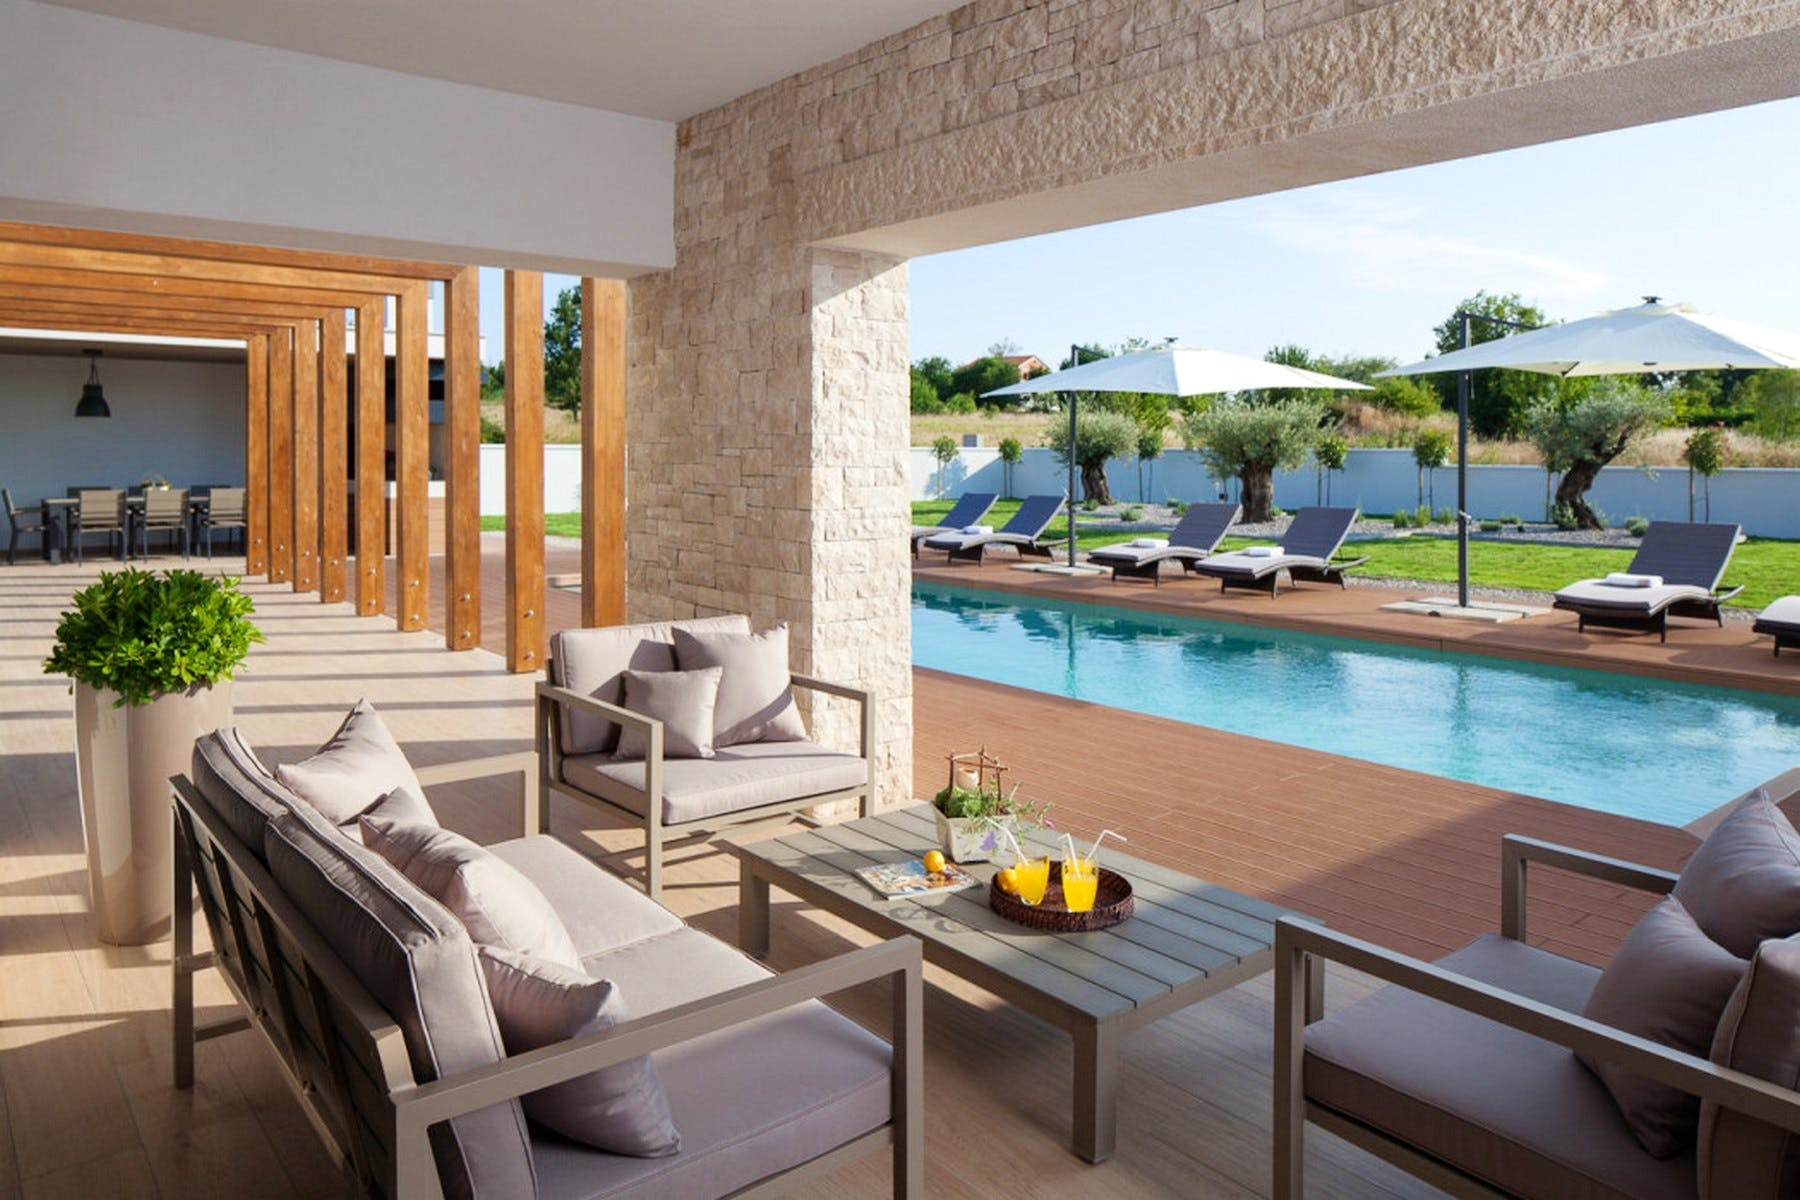 Lounge zone by the pool